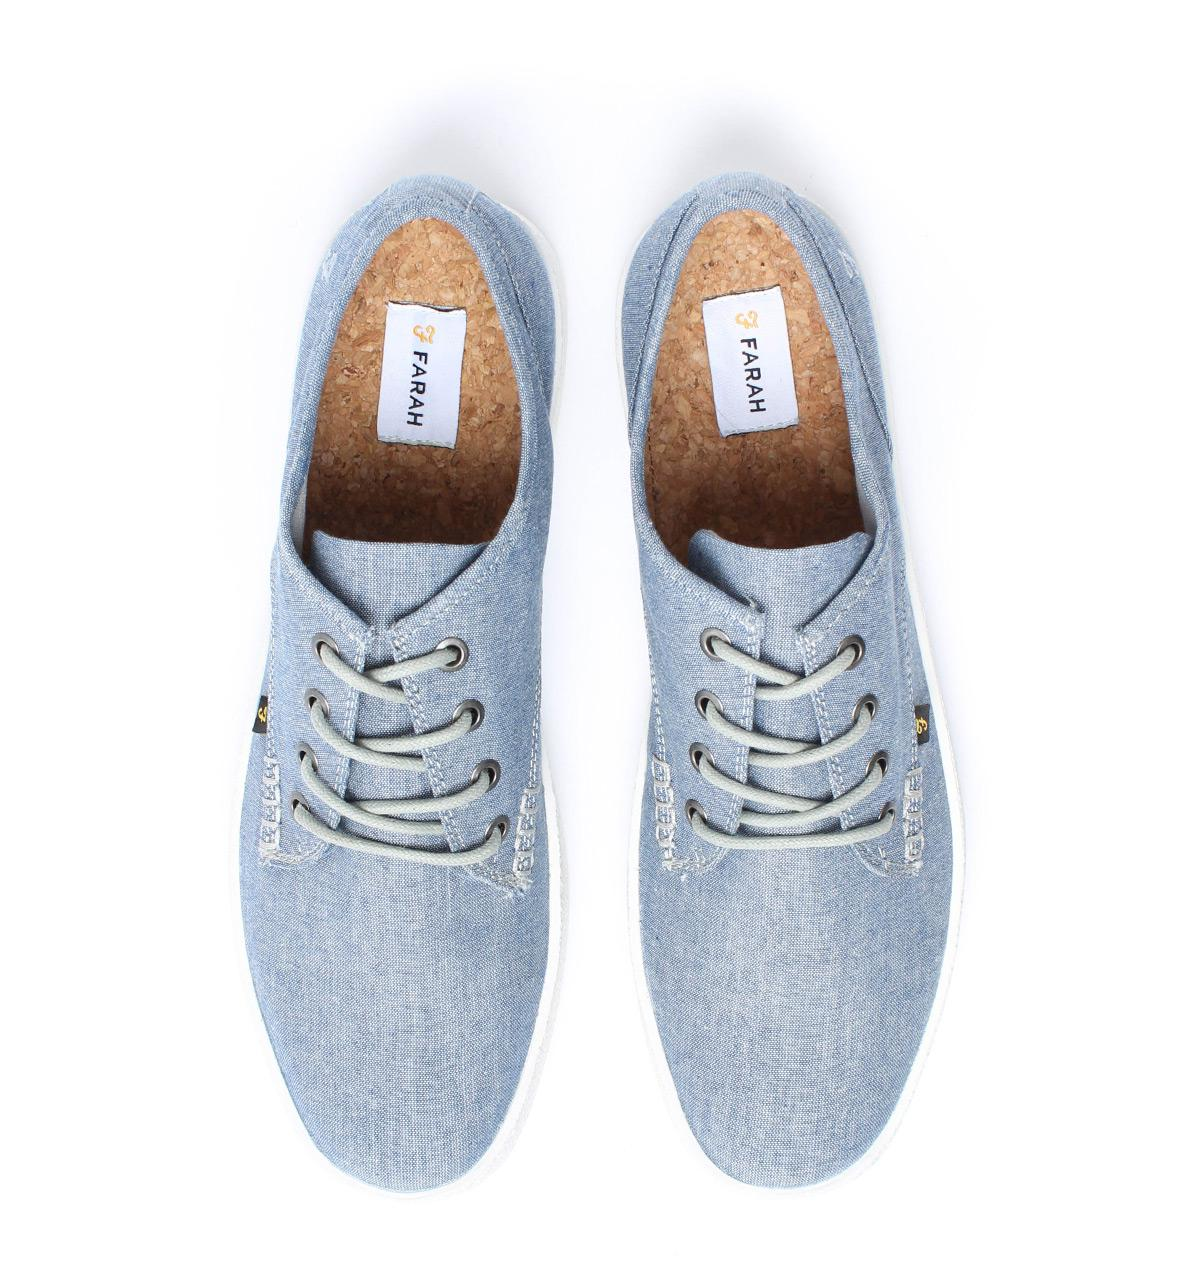 Farah Vintage Blue Chambray Canvas Trainers for Men